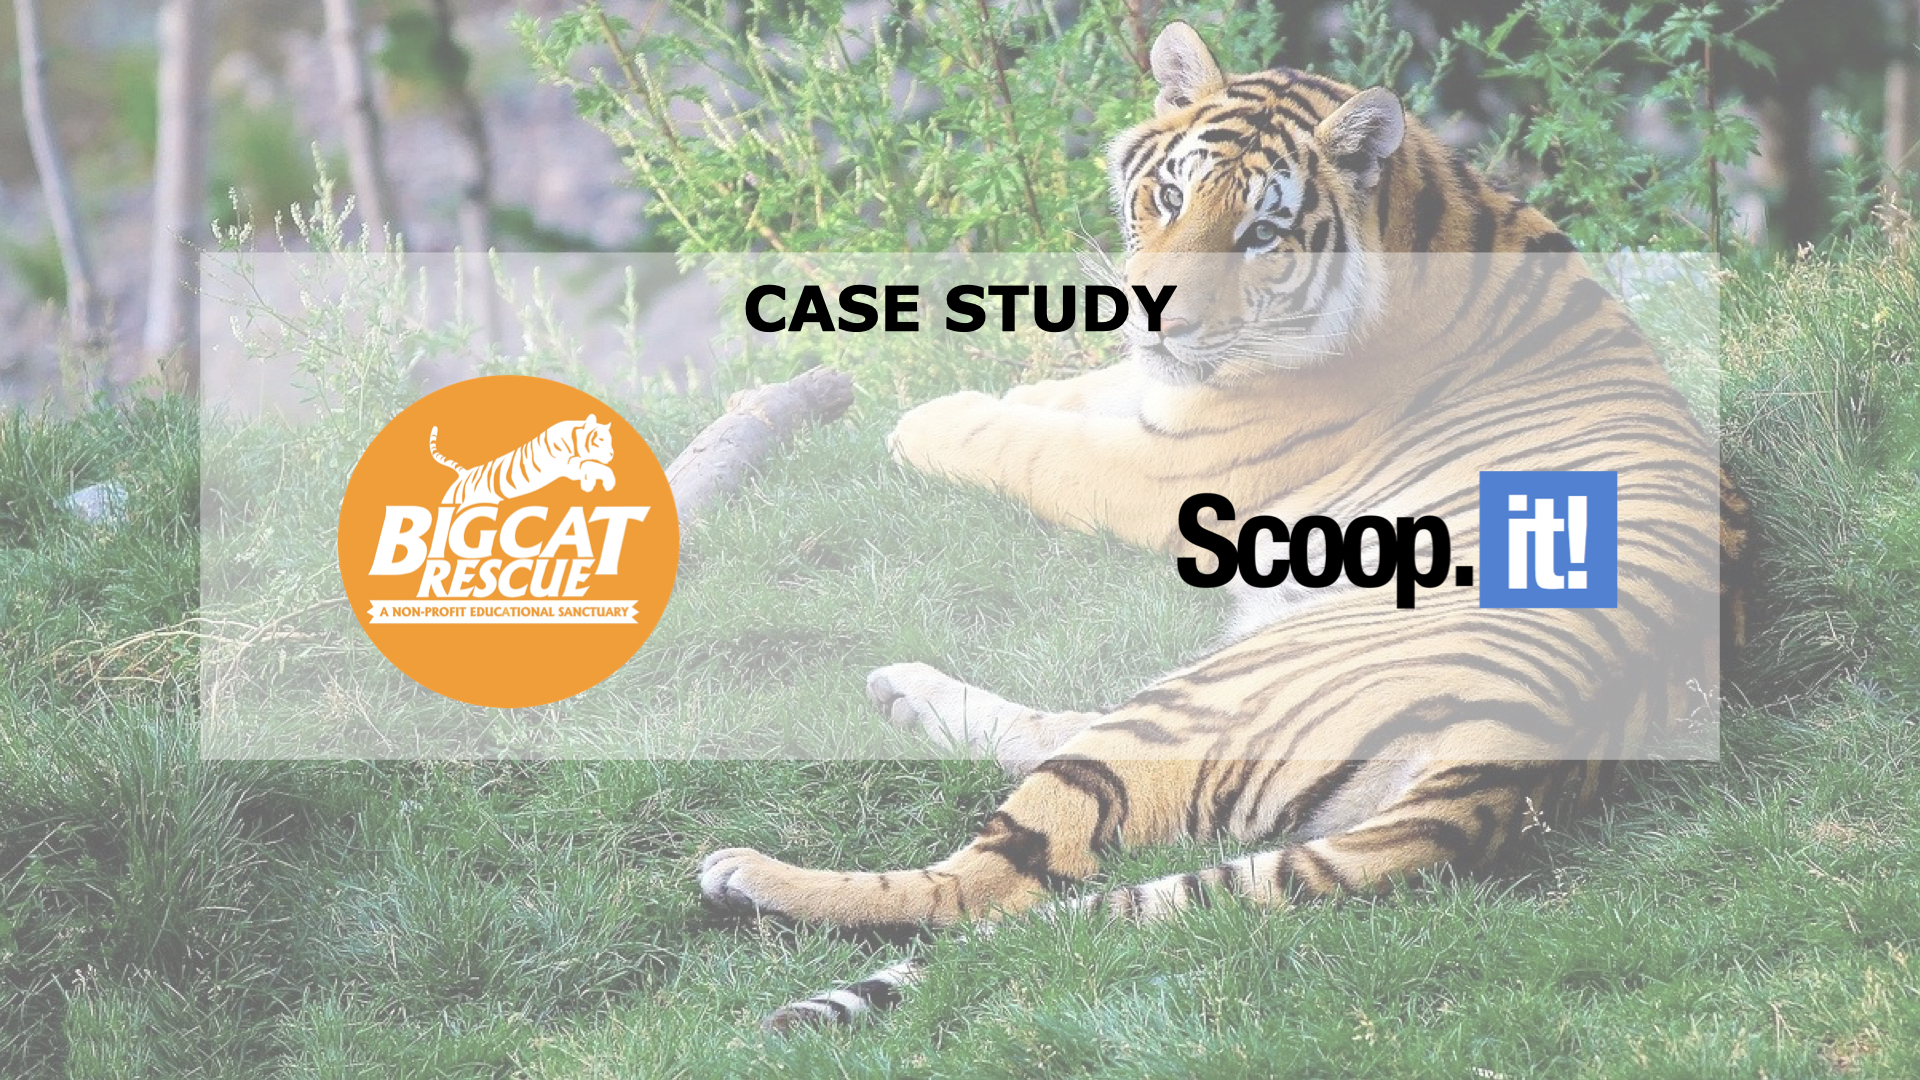 [Use Case] Big Cat Rescue & Scoop.it: How content contributes to animal protection